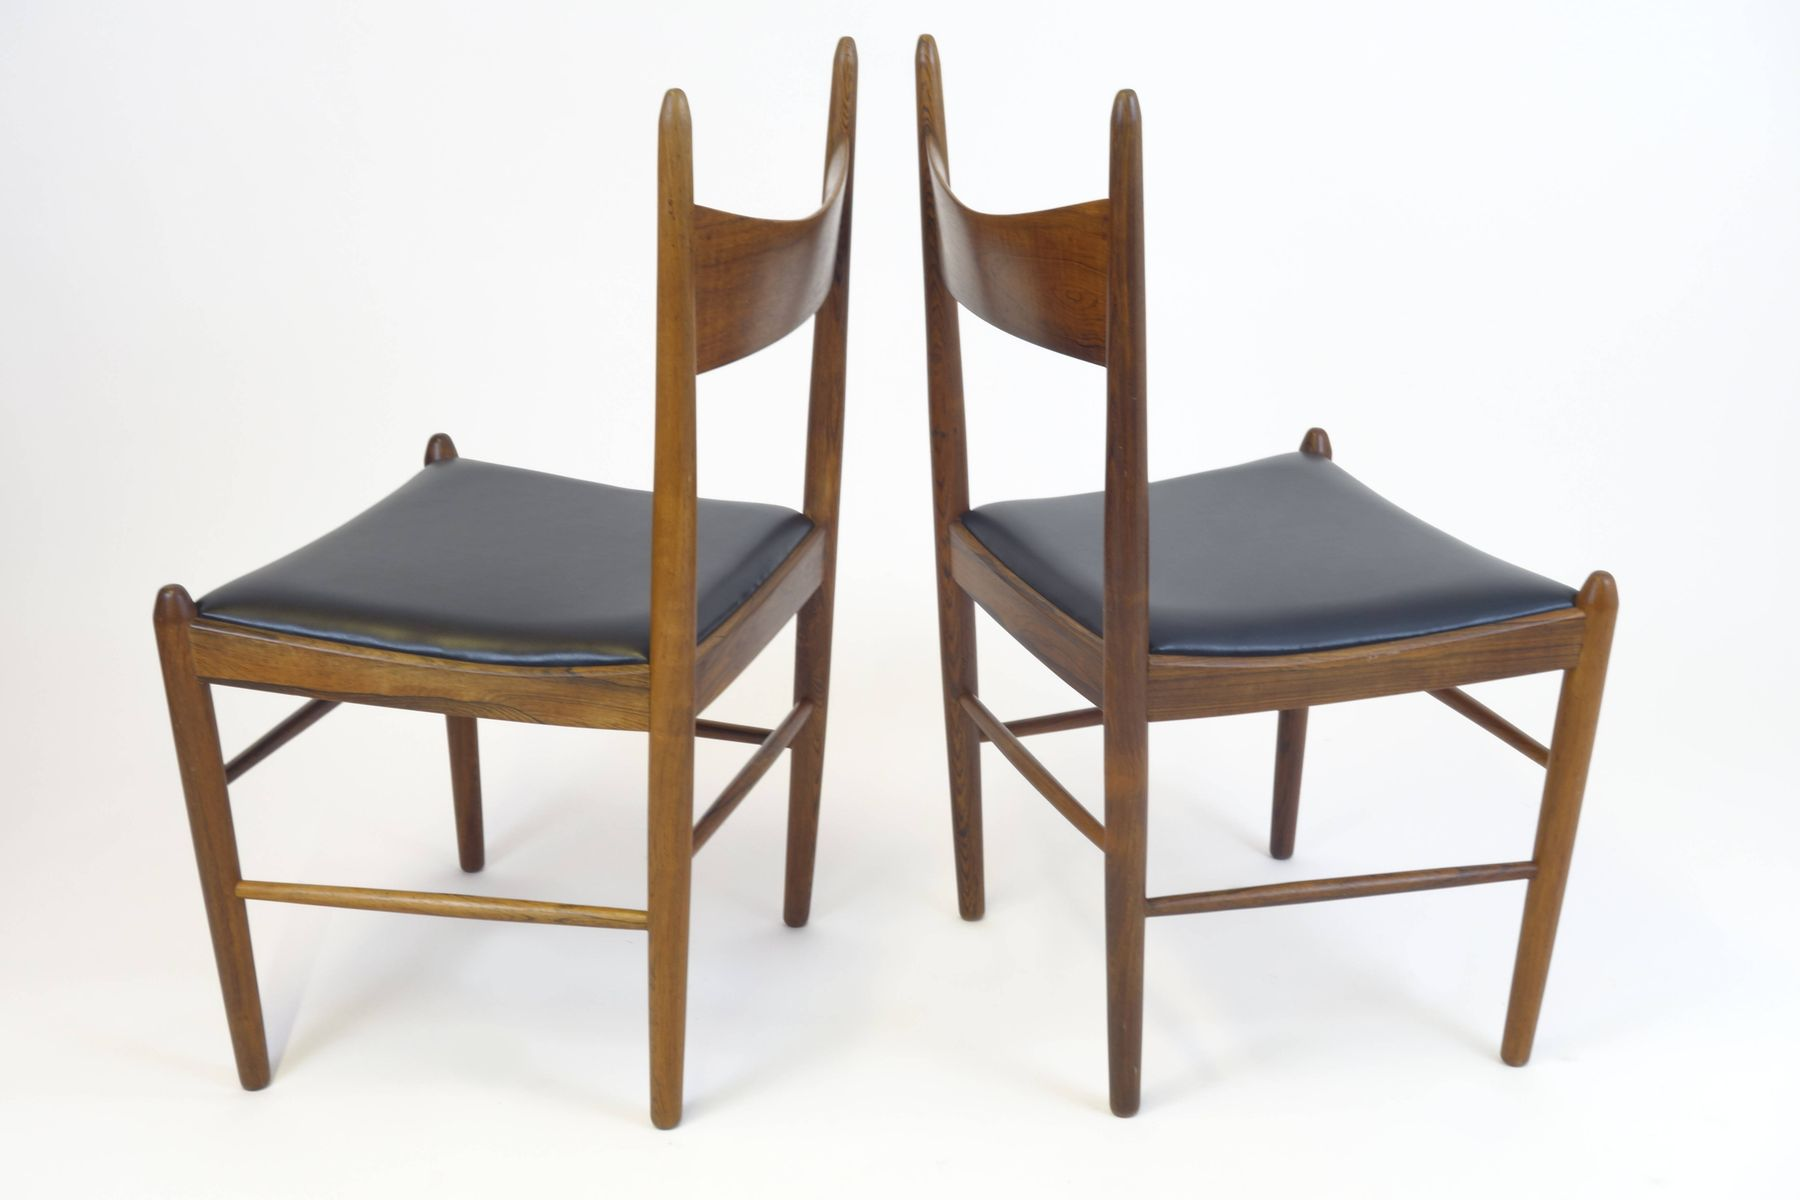 Dining Chairs by Illum Wikkelso for Vestervig Eriksen  : dining chairs by illum wikkelso for vestervig eriksen 1960s set of 4 6 from www.pamono.com size 1800 x 1200 jpeg 82kB